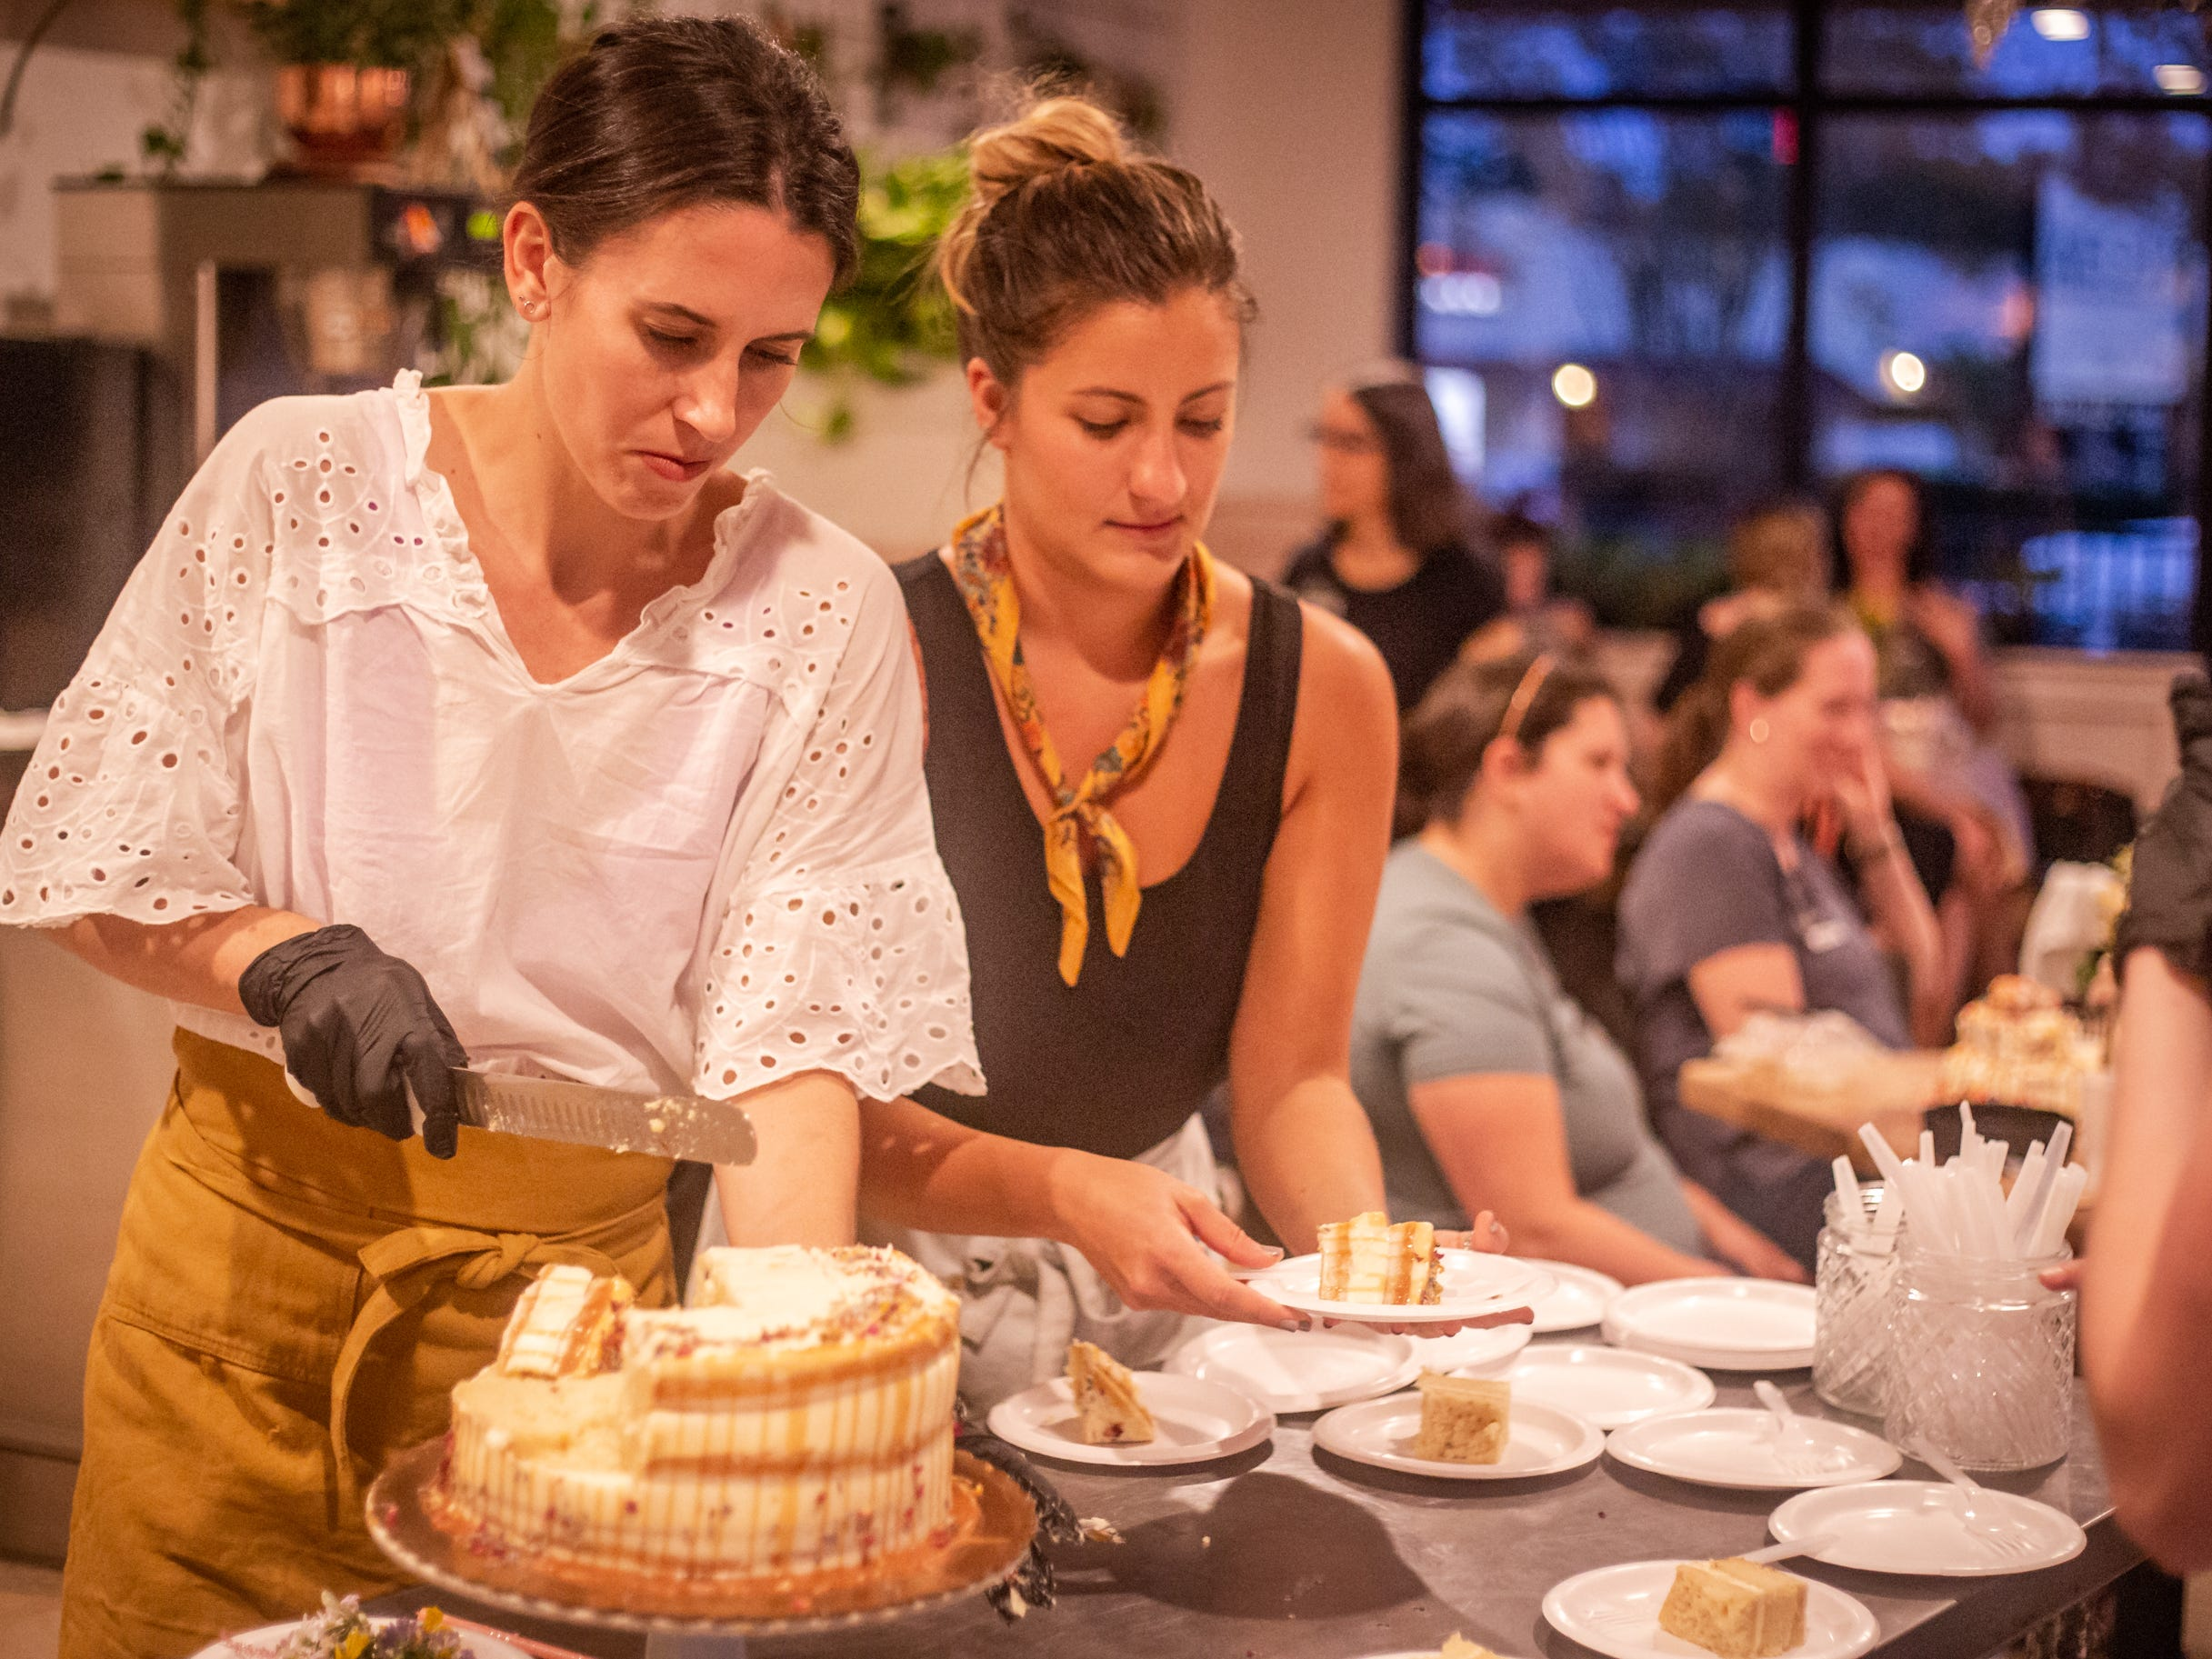 Lauren Poulos (left), SoDough baker and manager, cuts into SoDough's first birthday cake. The cake was assembled and decorated as part of the first class of the Autumn baking series held on Thursday, September 28, 2018 at SoDough in Tallahassee, FL.